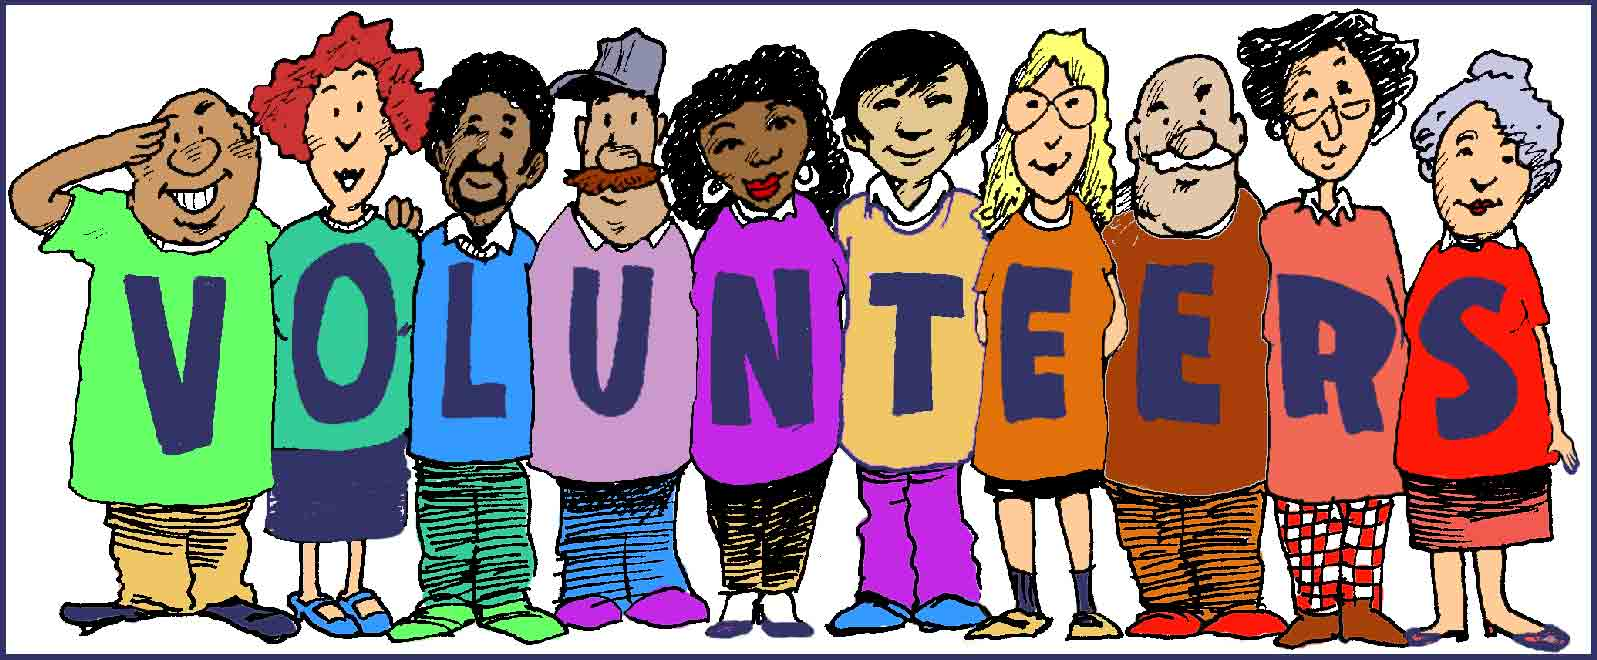 Volunteering for FCSSC makes a direct impact in our ability to provide services to those who would otherwise be unable to afford it.   We have many opportunities for volunteers to help us better serve the community, and we deeply appreciate all the efforts our volunteers make.  Learn about some of the ways volunteers can get involved:  Answering phones Filing, typing, organizing, other clerical work Assisting with events Fundraising (ex. selling cookies, reaching out to potential donors) Facility services (painting, plumbing, electrical, landscaping, etc.) Marketing / public relations IT / Computers Volunteer coordination (recruiting, scheduling and oversight) If you're interested in volunteering, contact Pat Freyberger at pfreyberger@fcssomerset.org or Richard Schumann at rschumann@fcssomerset.org for more information.